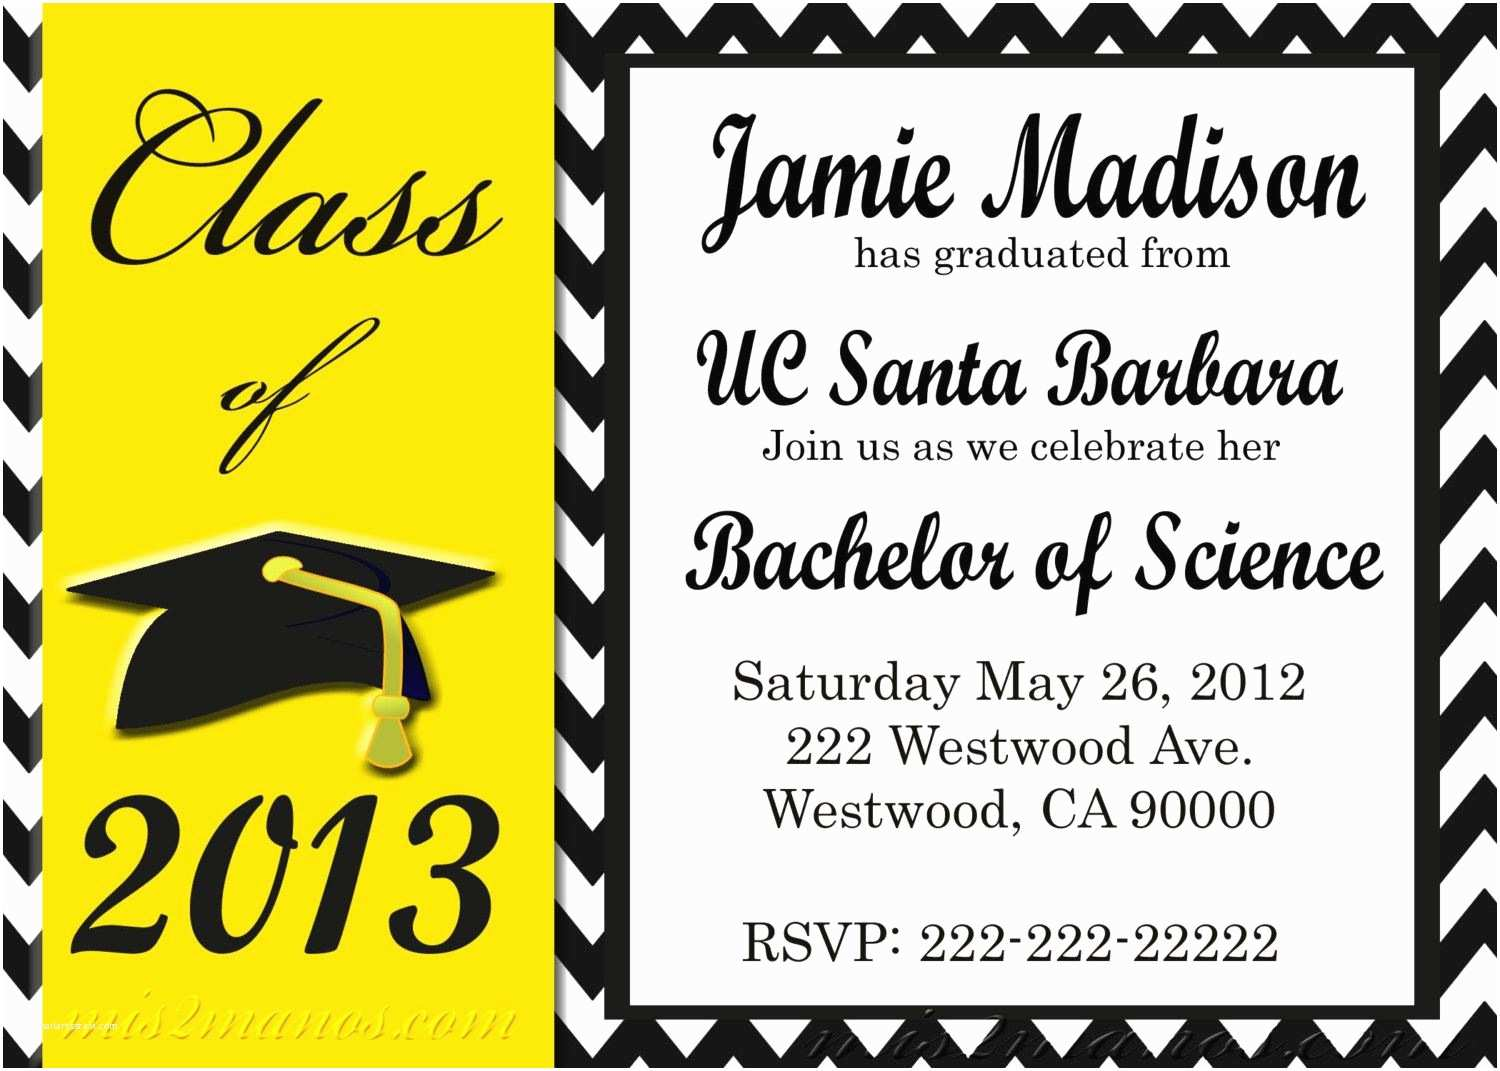 Graduation Party Invitations Templates Free Superb Invitation All About Card Invitation Winter